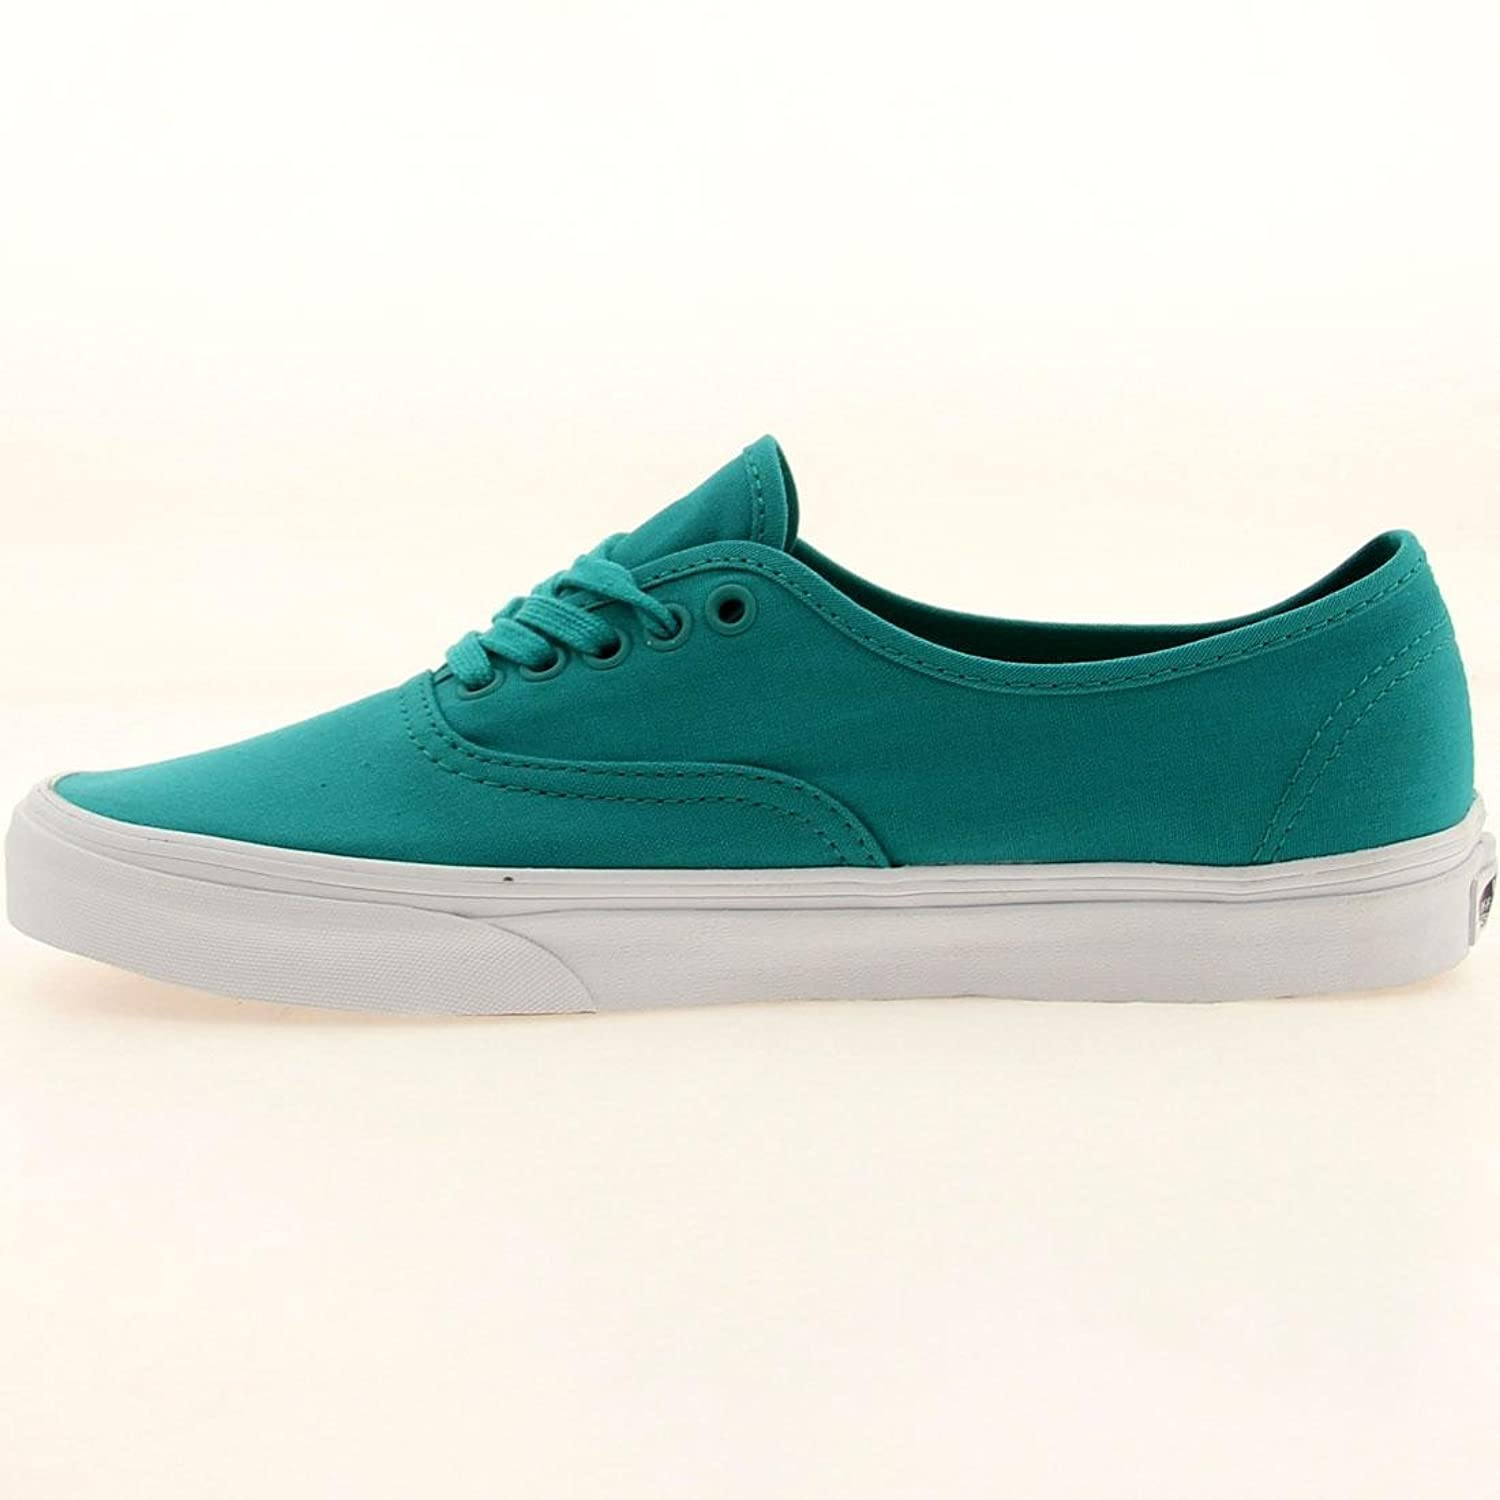 Amazon.com | Vans Authentic Mono Deep Peacock Blue Men's Skate Shoes Size  9.5 | Skateboarding